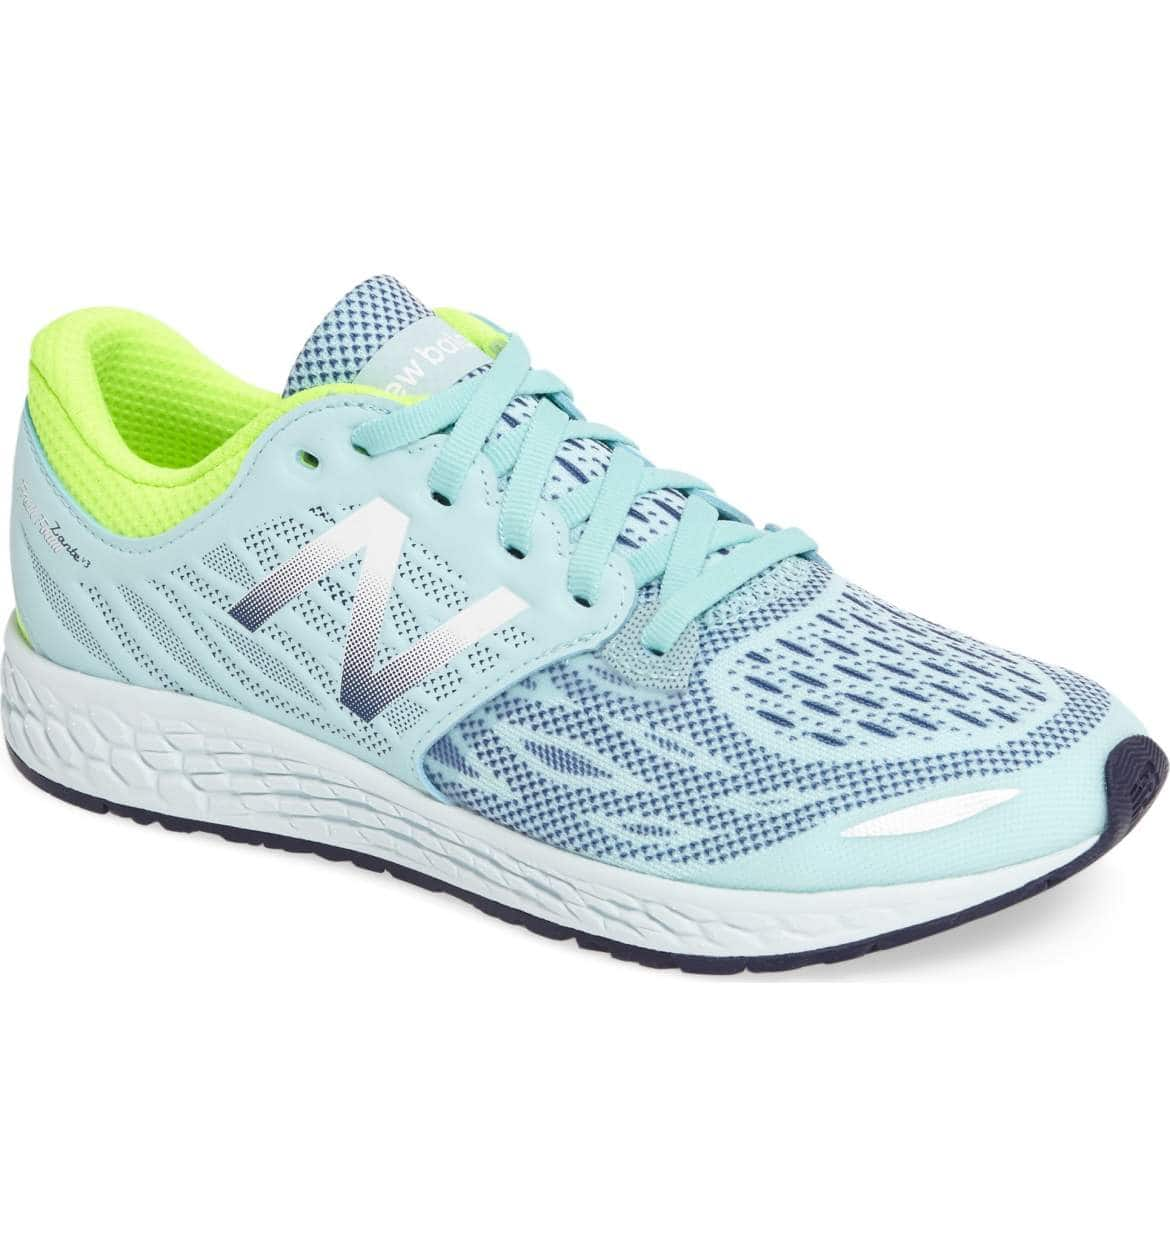 NEW BALANCE Fresh Foam Sneaker (big kid) $21.97